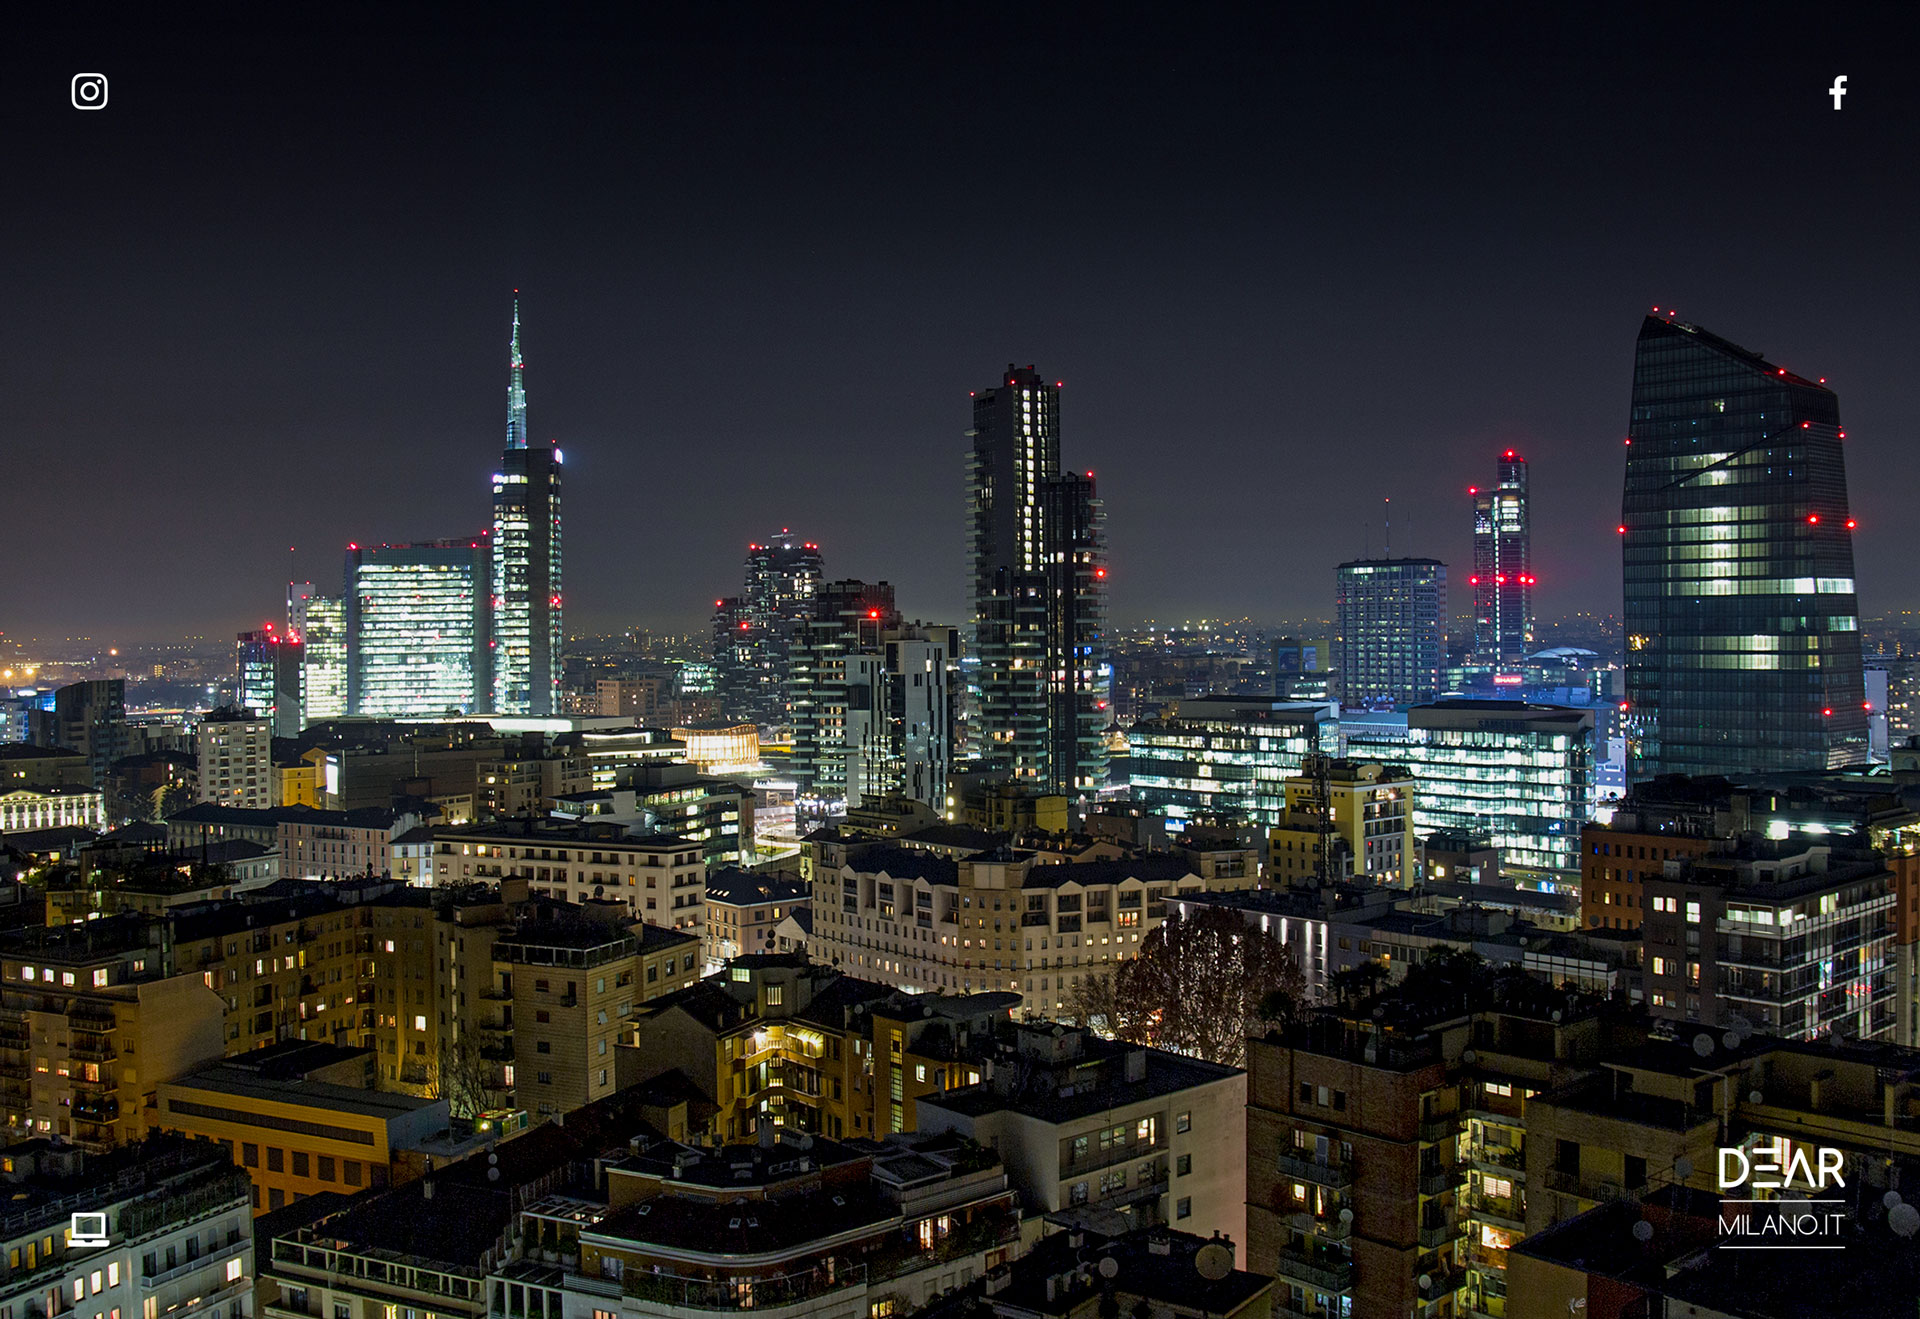 skyline milano by night, milano, dearmilano.it, paolo marchesi fotografo